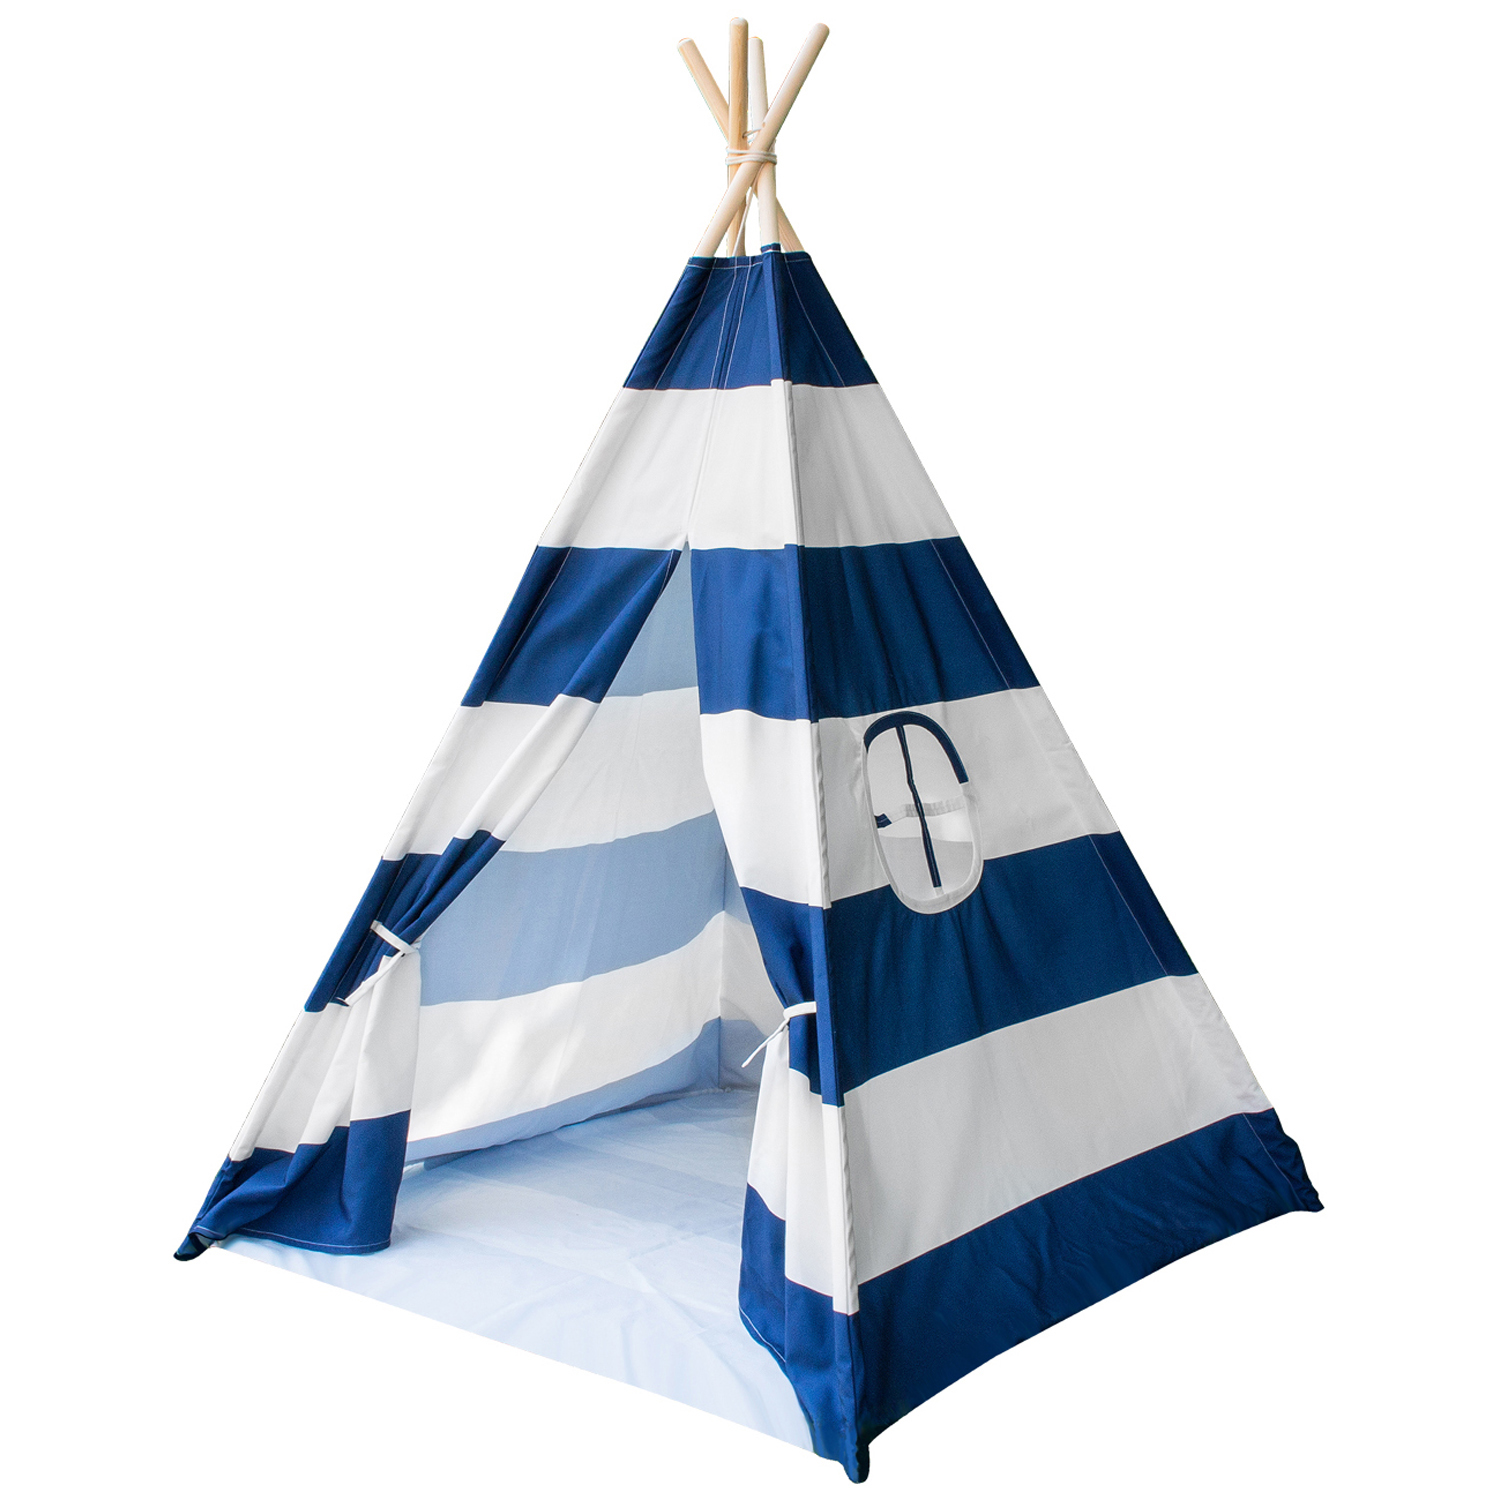 Sorbus Teepee Play Tent for Kids, Includes Portable Carry Bag for Travel or Storage